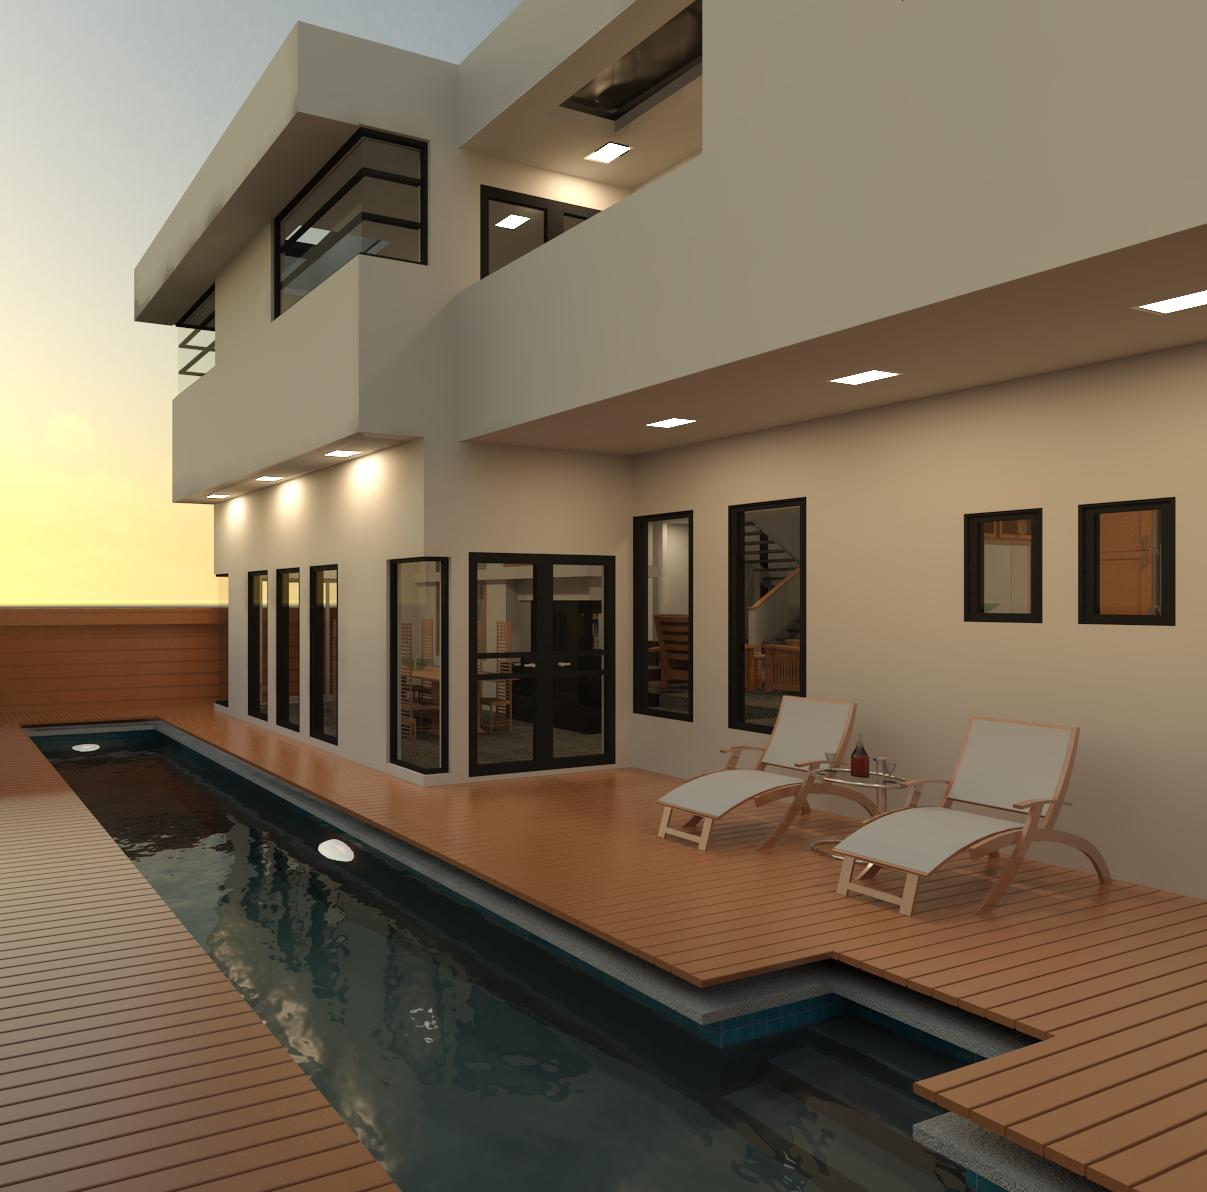 Ashelford residence renderings ashelford consulting for Revit architecture modern house design